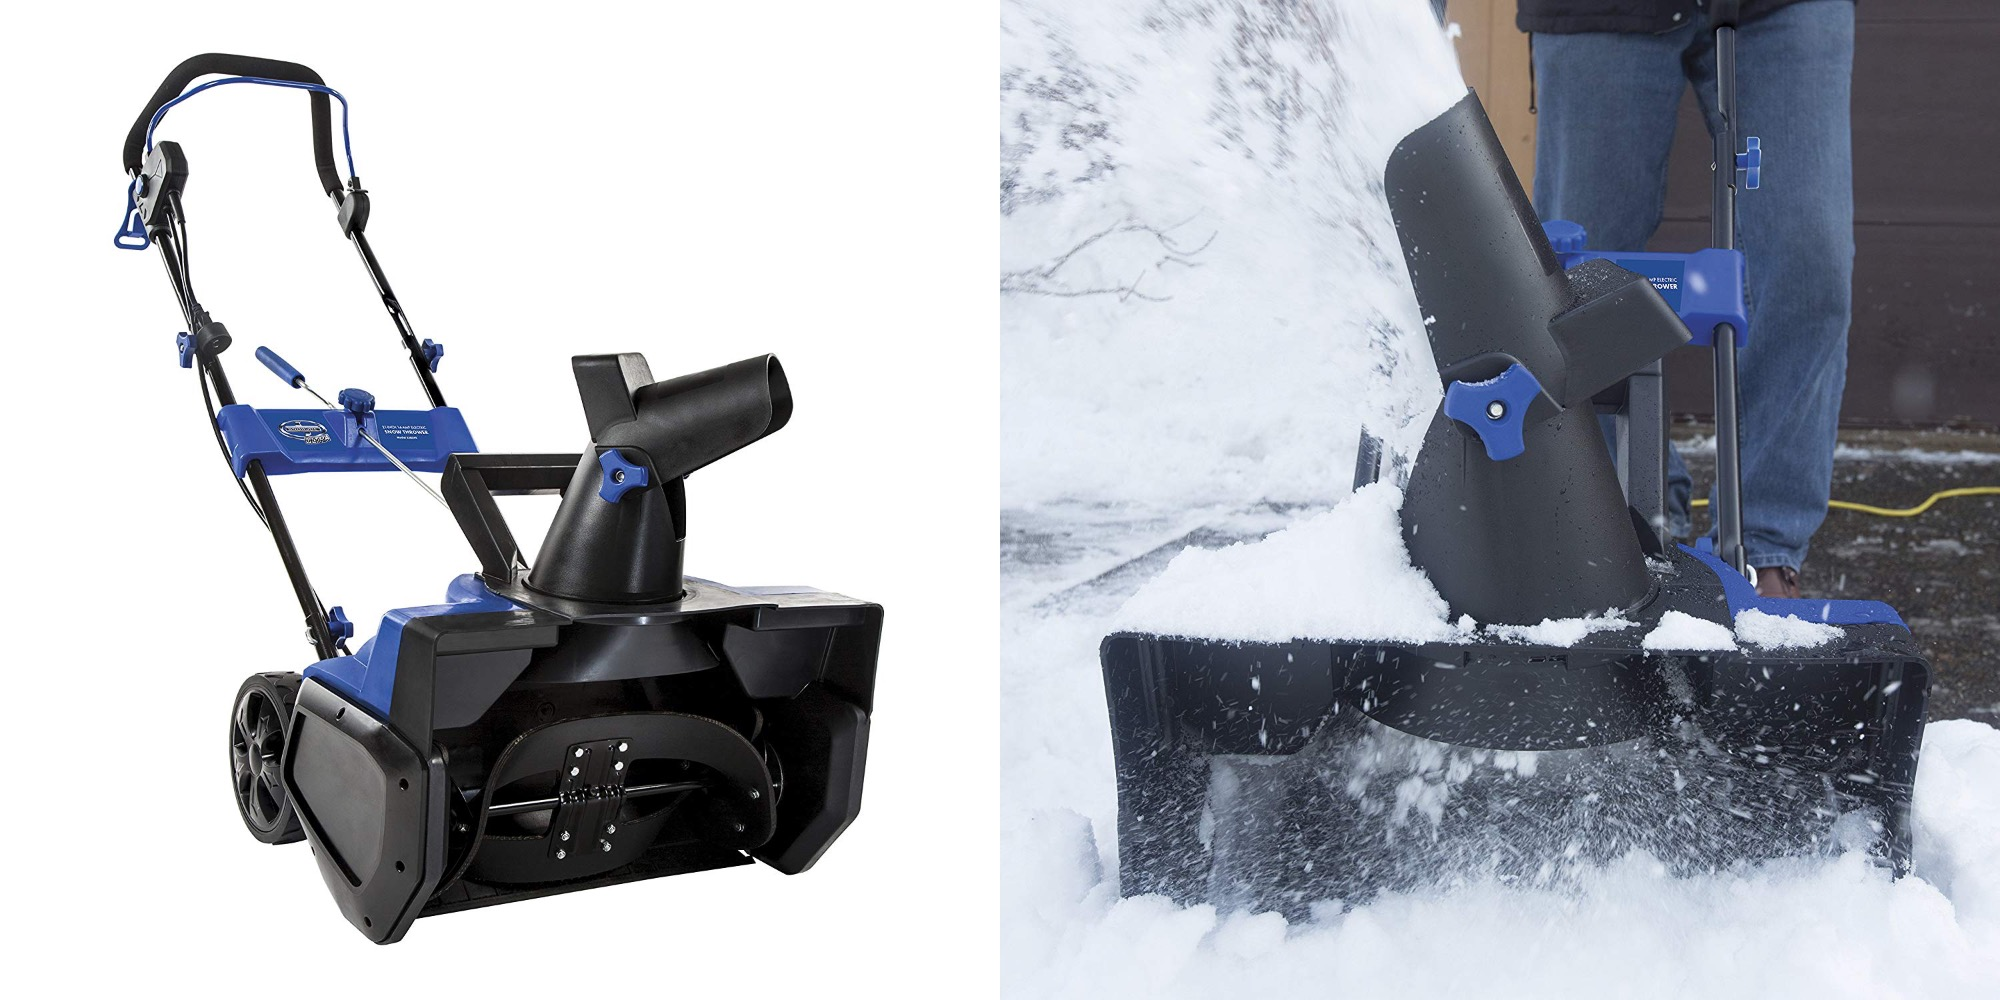 Save your back w/ Snow Joe's 21-inch Electric Snow Thrower: $100 shipped (Refurb, Orig. $270)